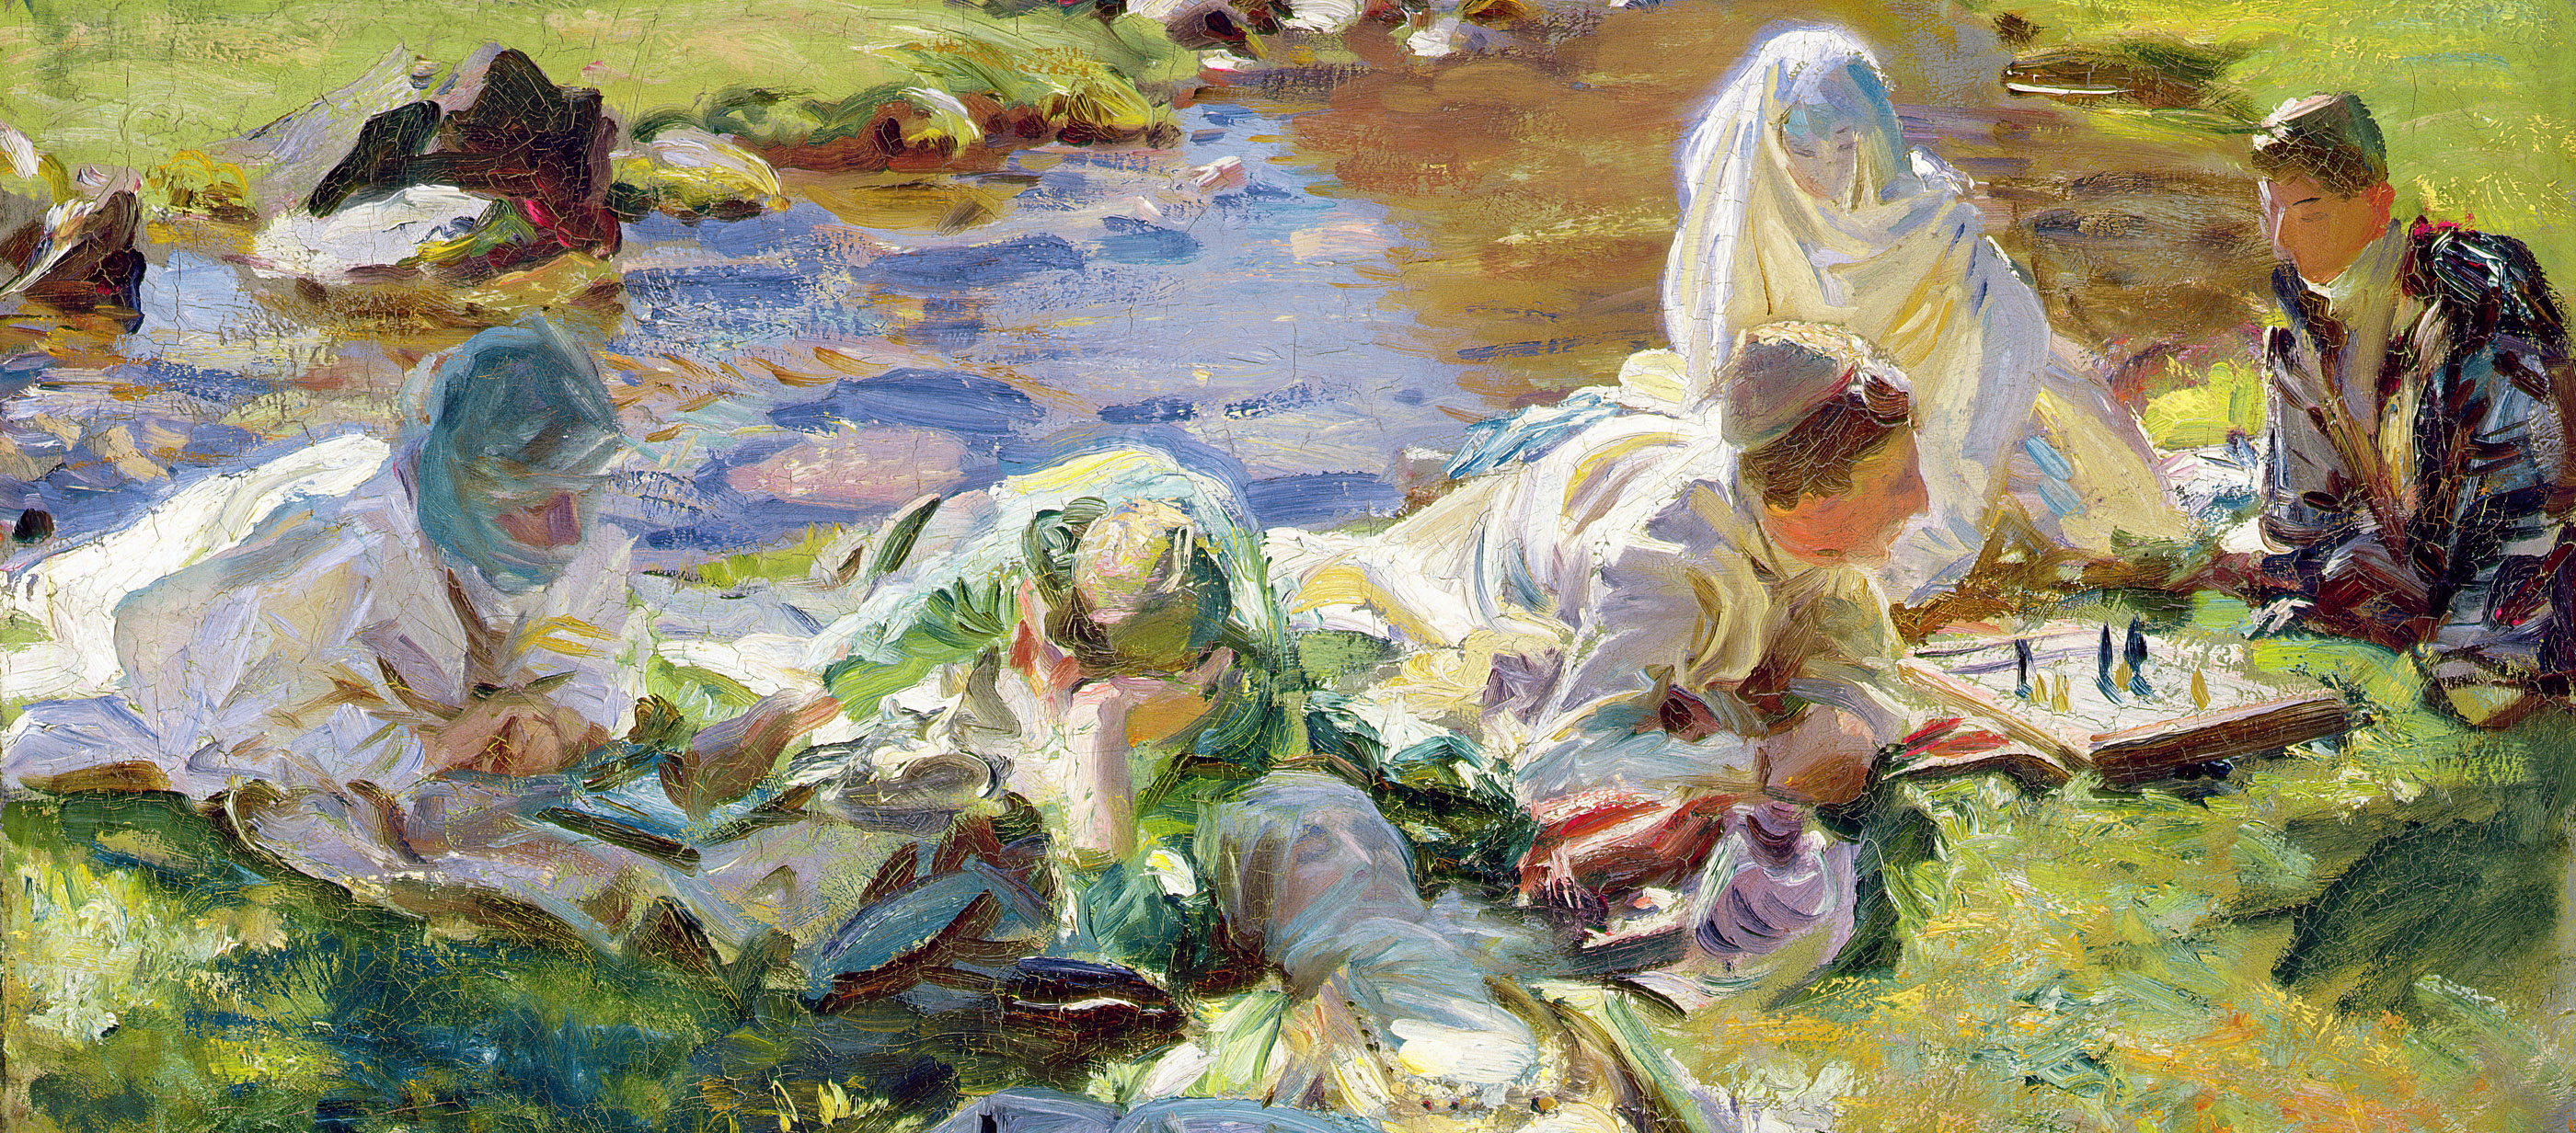 Dolce Far Niente, by John Singer Sargent, c. 1907. Brooklyn Museum, New York.